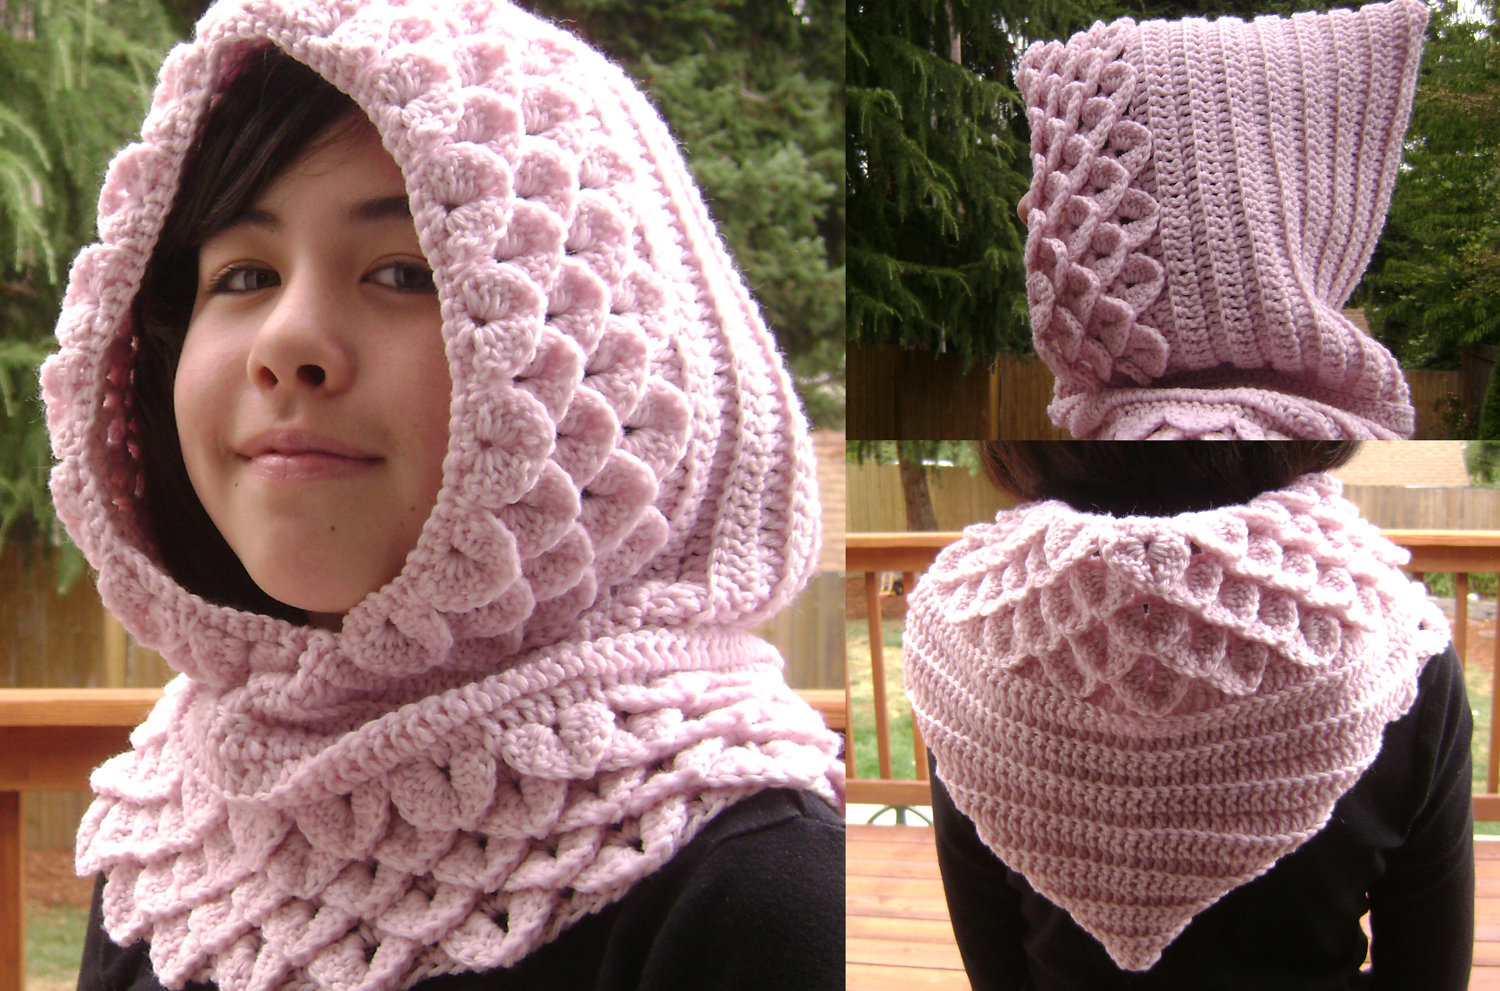 Crochet baby scarf pattern free manet for crochet animal hooded cowl pattern free bankloansurffo Images